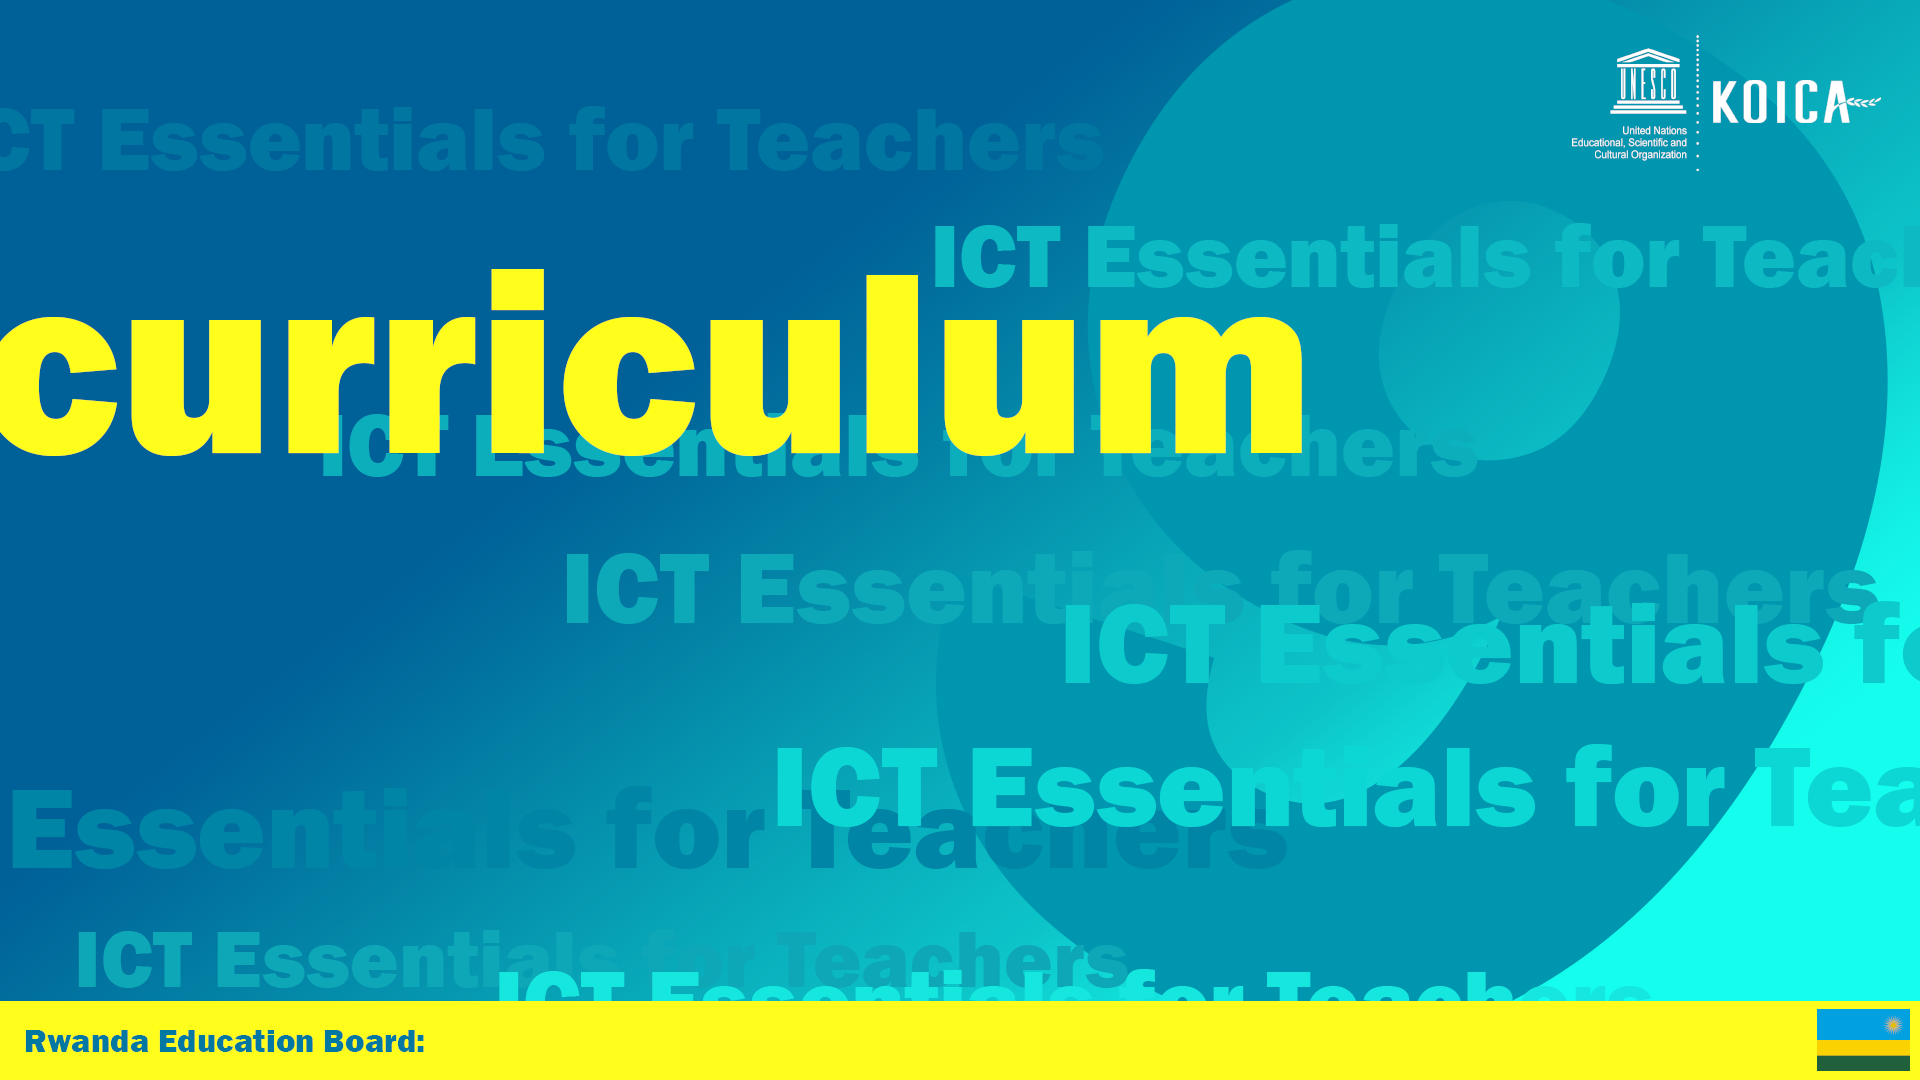 ICT & Curriculum